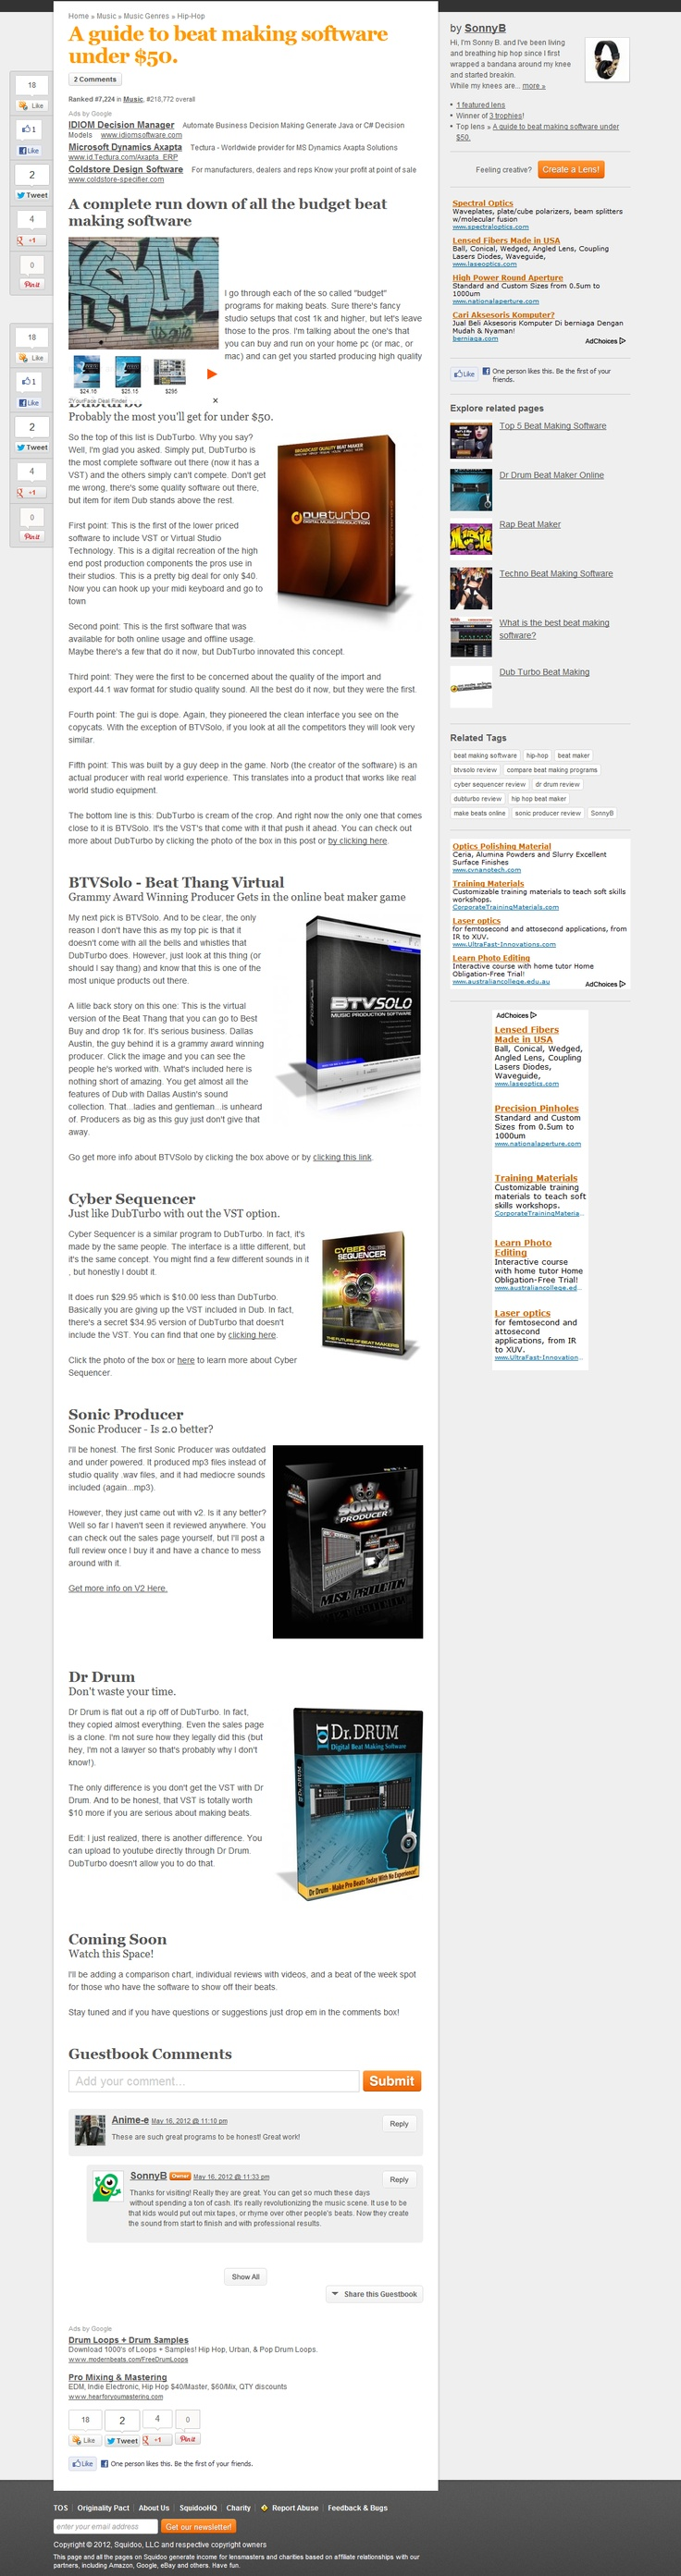 Compare the top software for making beats at home for under fifty bucks >> Beat Making Software for Under $50 --> www.squidoo.com/hiphopbeatmakingsoftware